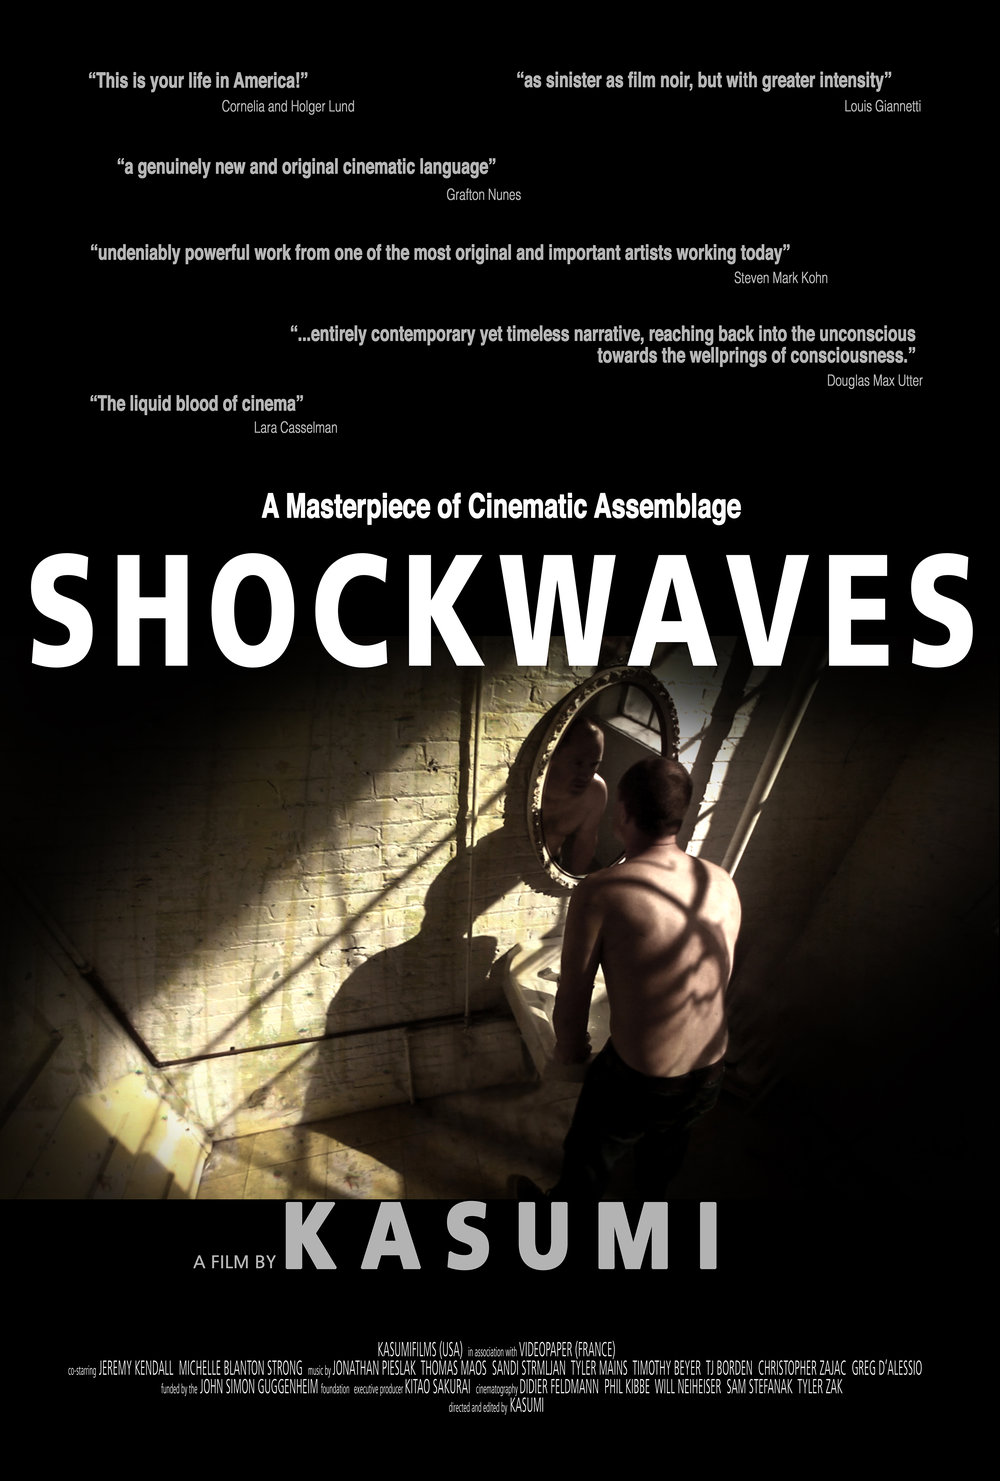 shockwaves poster courtesy Kasumifilms.jpg